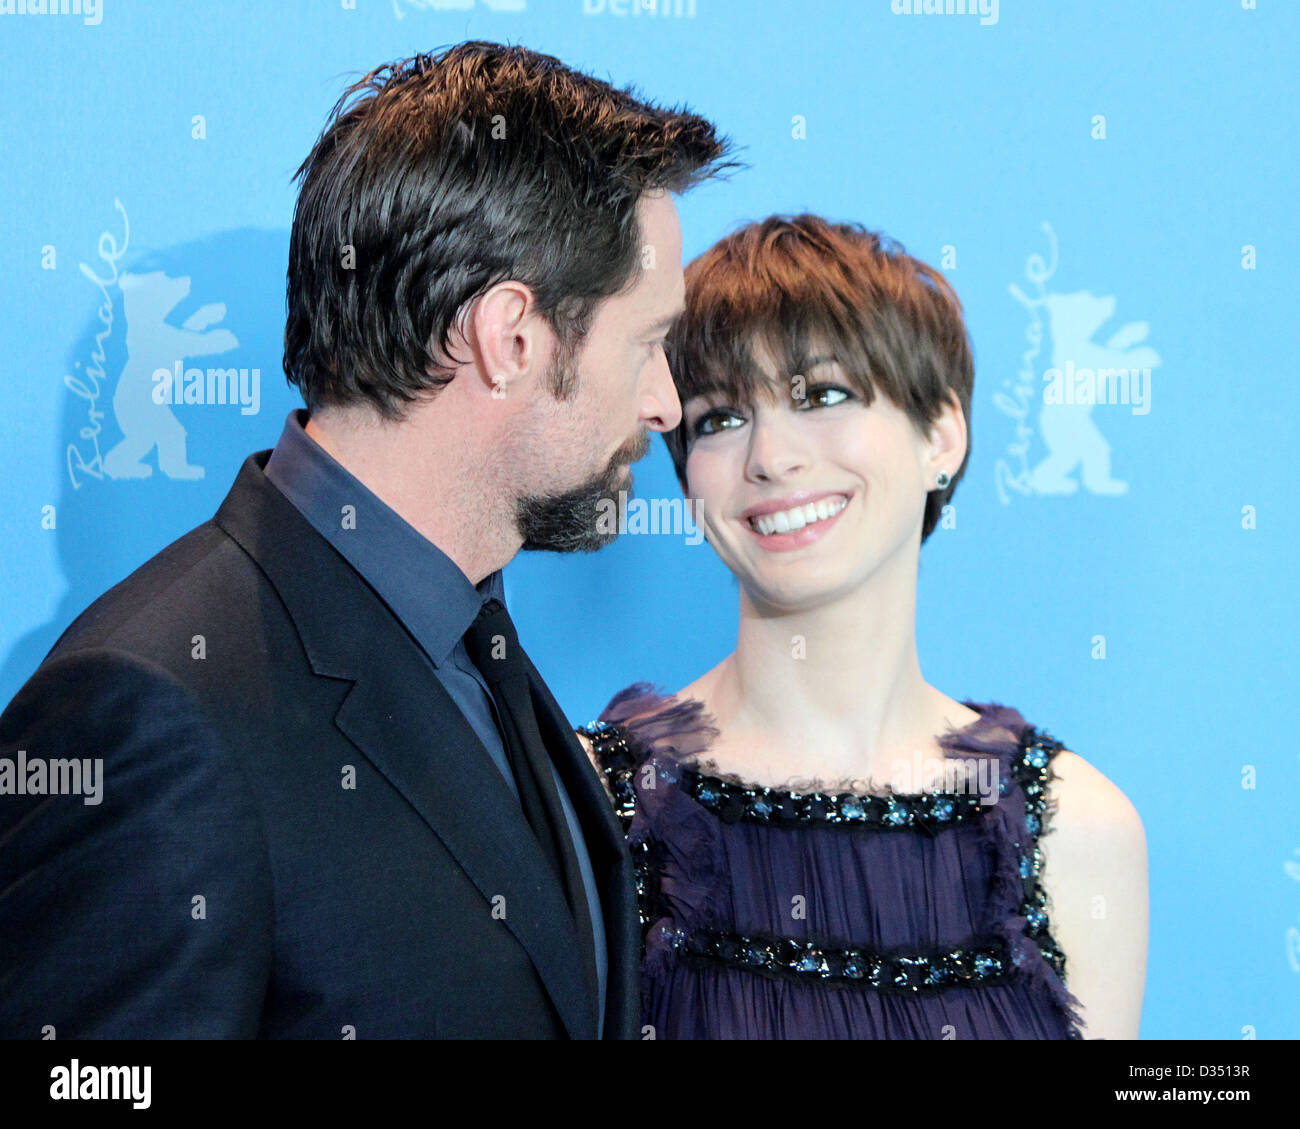 Im im images of anne hathaway - Hugh Jackman Anne Hathaway Photocall Les Miserables Im Hyatt Hotel In Berlin Am 09 02 2013 Foto Succomedia Steffi Karrenbrock